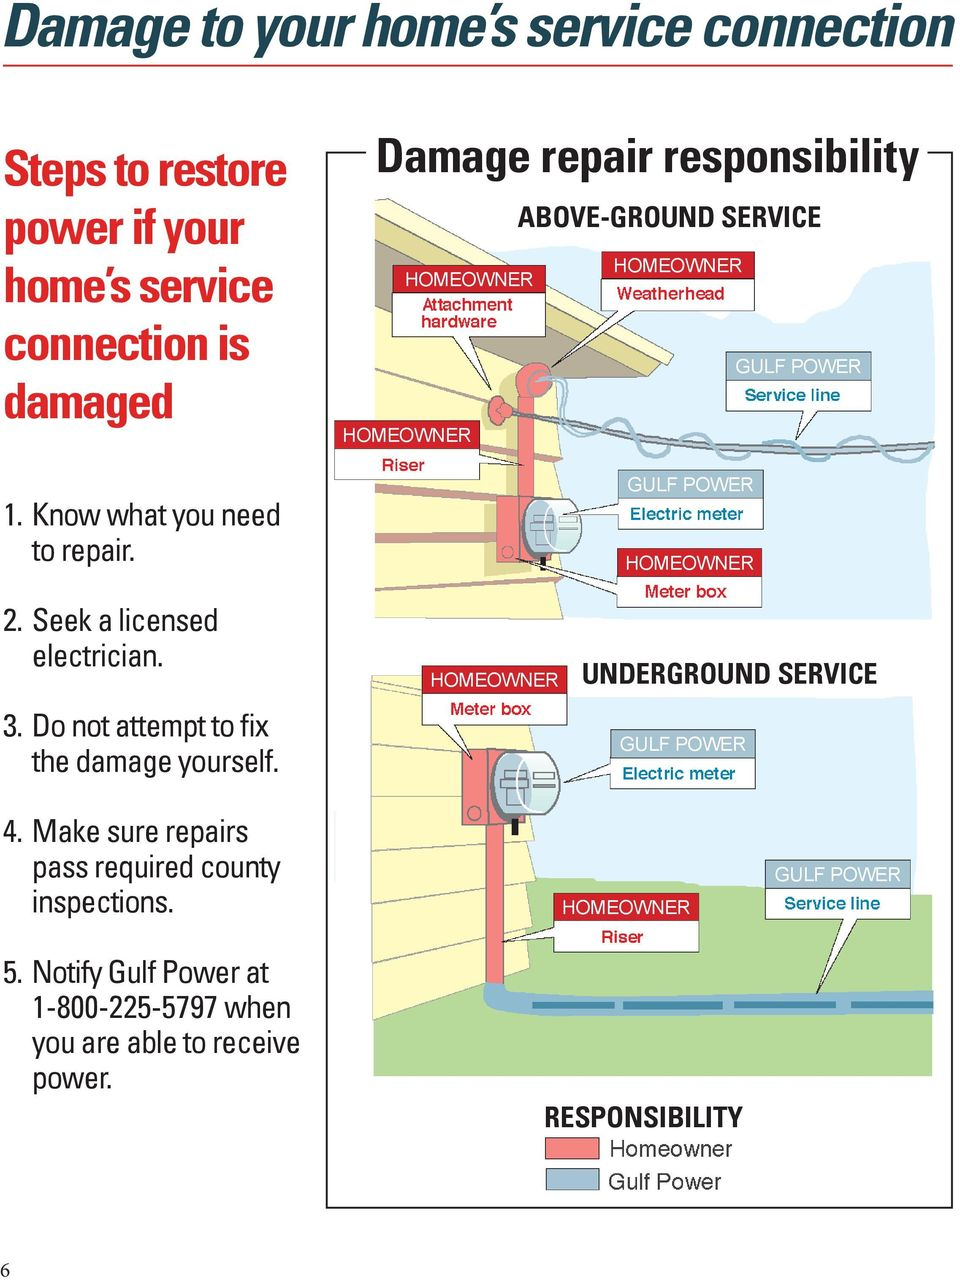 Damage repair responsibility ABOVE-GROUND SERVICE HOMEOWNER HOMEOWNER GULF POWER HOMEOWNER GULF POWER HOMEOWNER 2.